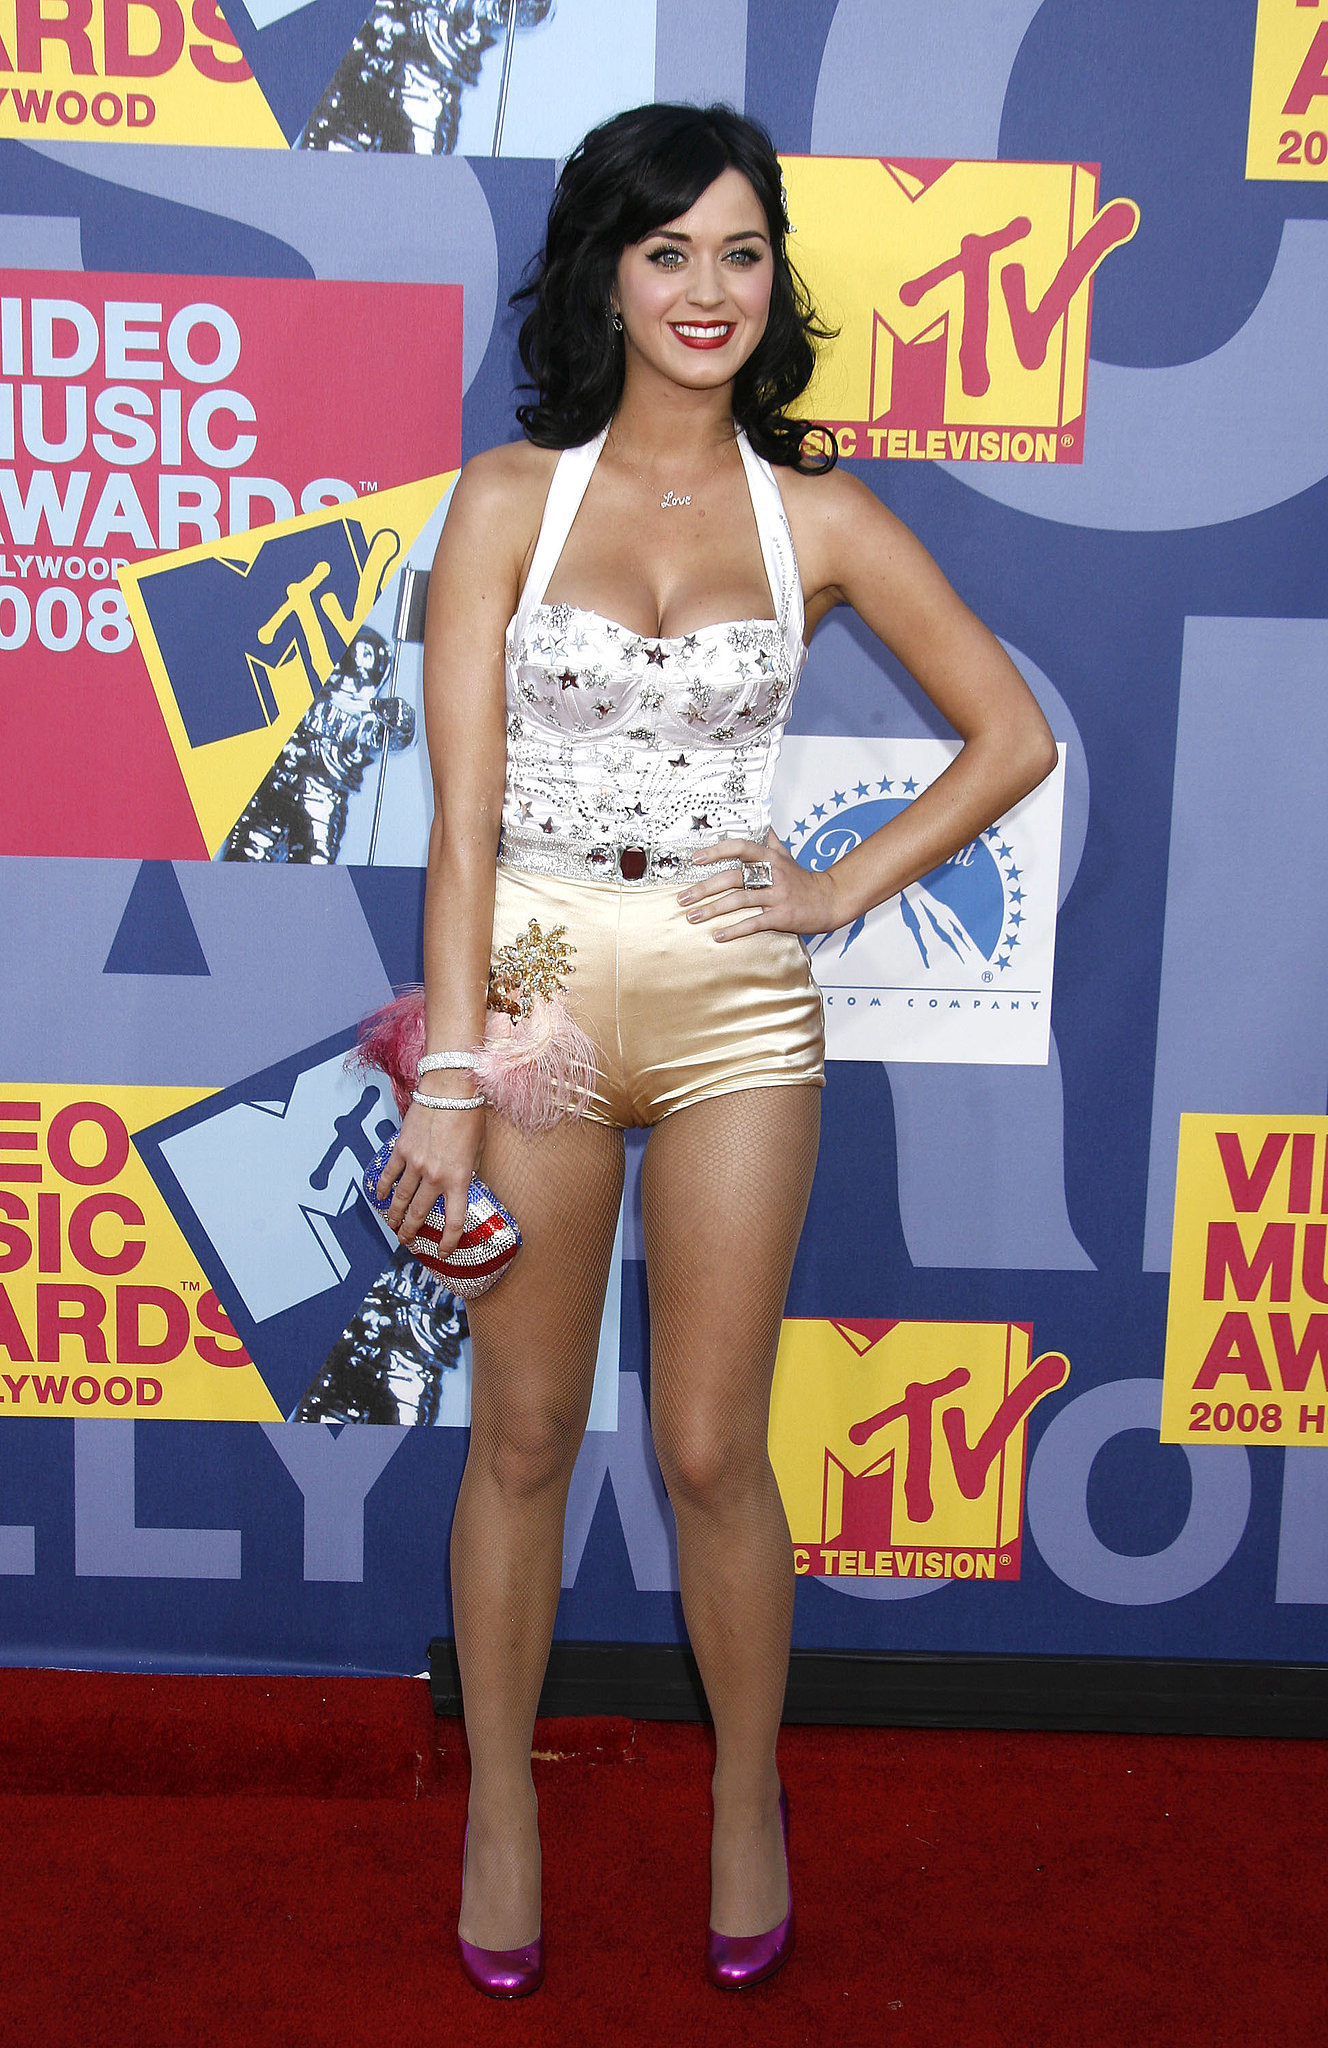 Katy Perry stepped onto the red carpet at the September 2008 MTV Music Awards at Paramount Pictures Studio in LA.